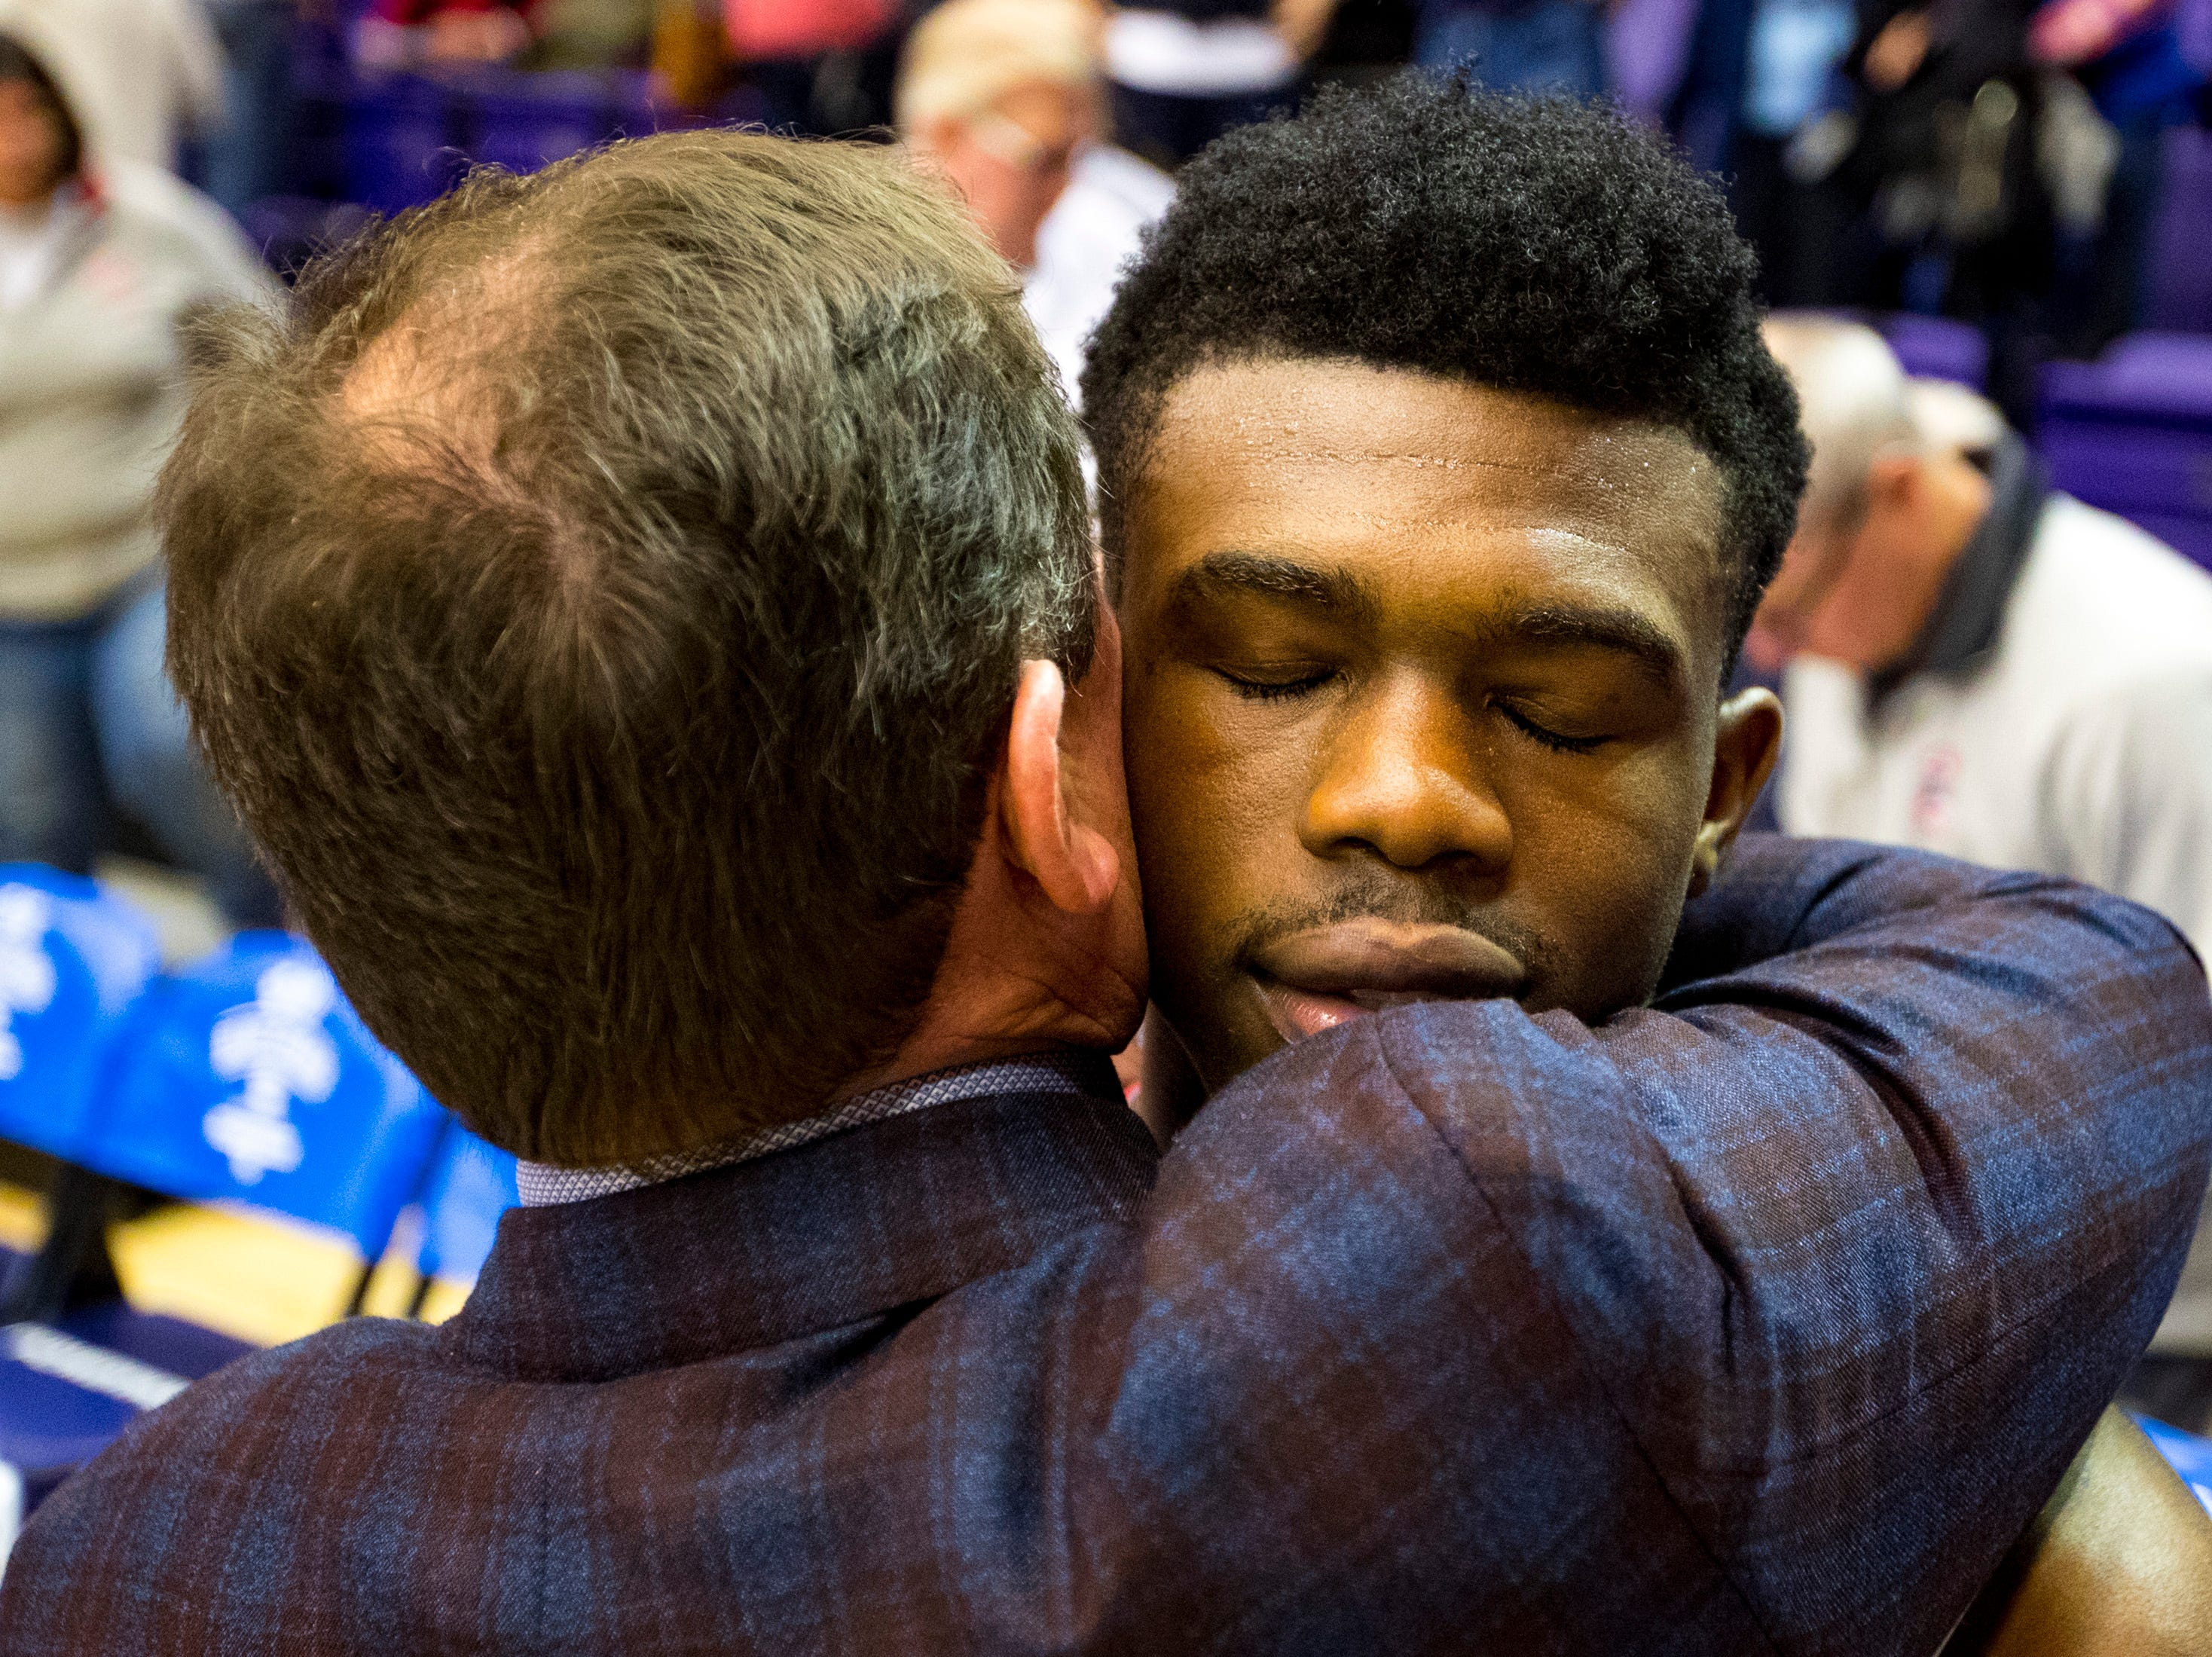 Brentwood Academy's Marcus Fitzgerald (5) gets a hug from Brentwood Academy's head coach Hubie Smith after Brentwood Academy's game against Baylor in the semifinal round of the TSSAA Division II Class AA State Championships at Lipscomb University's Allen Arena in Nashville on Thursday, Feb. 28, 2019.